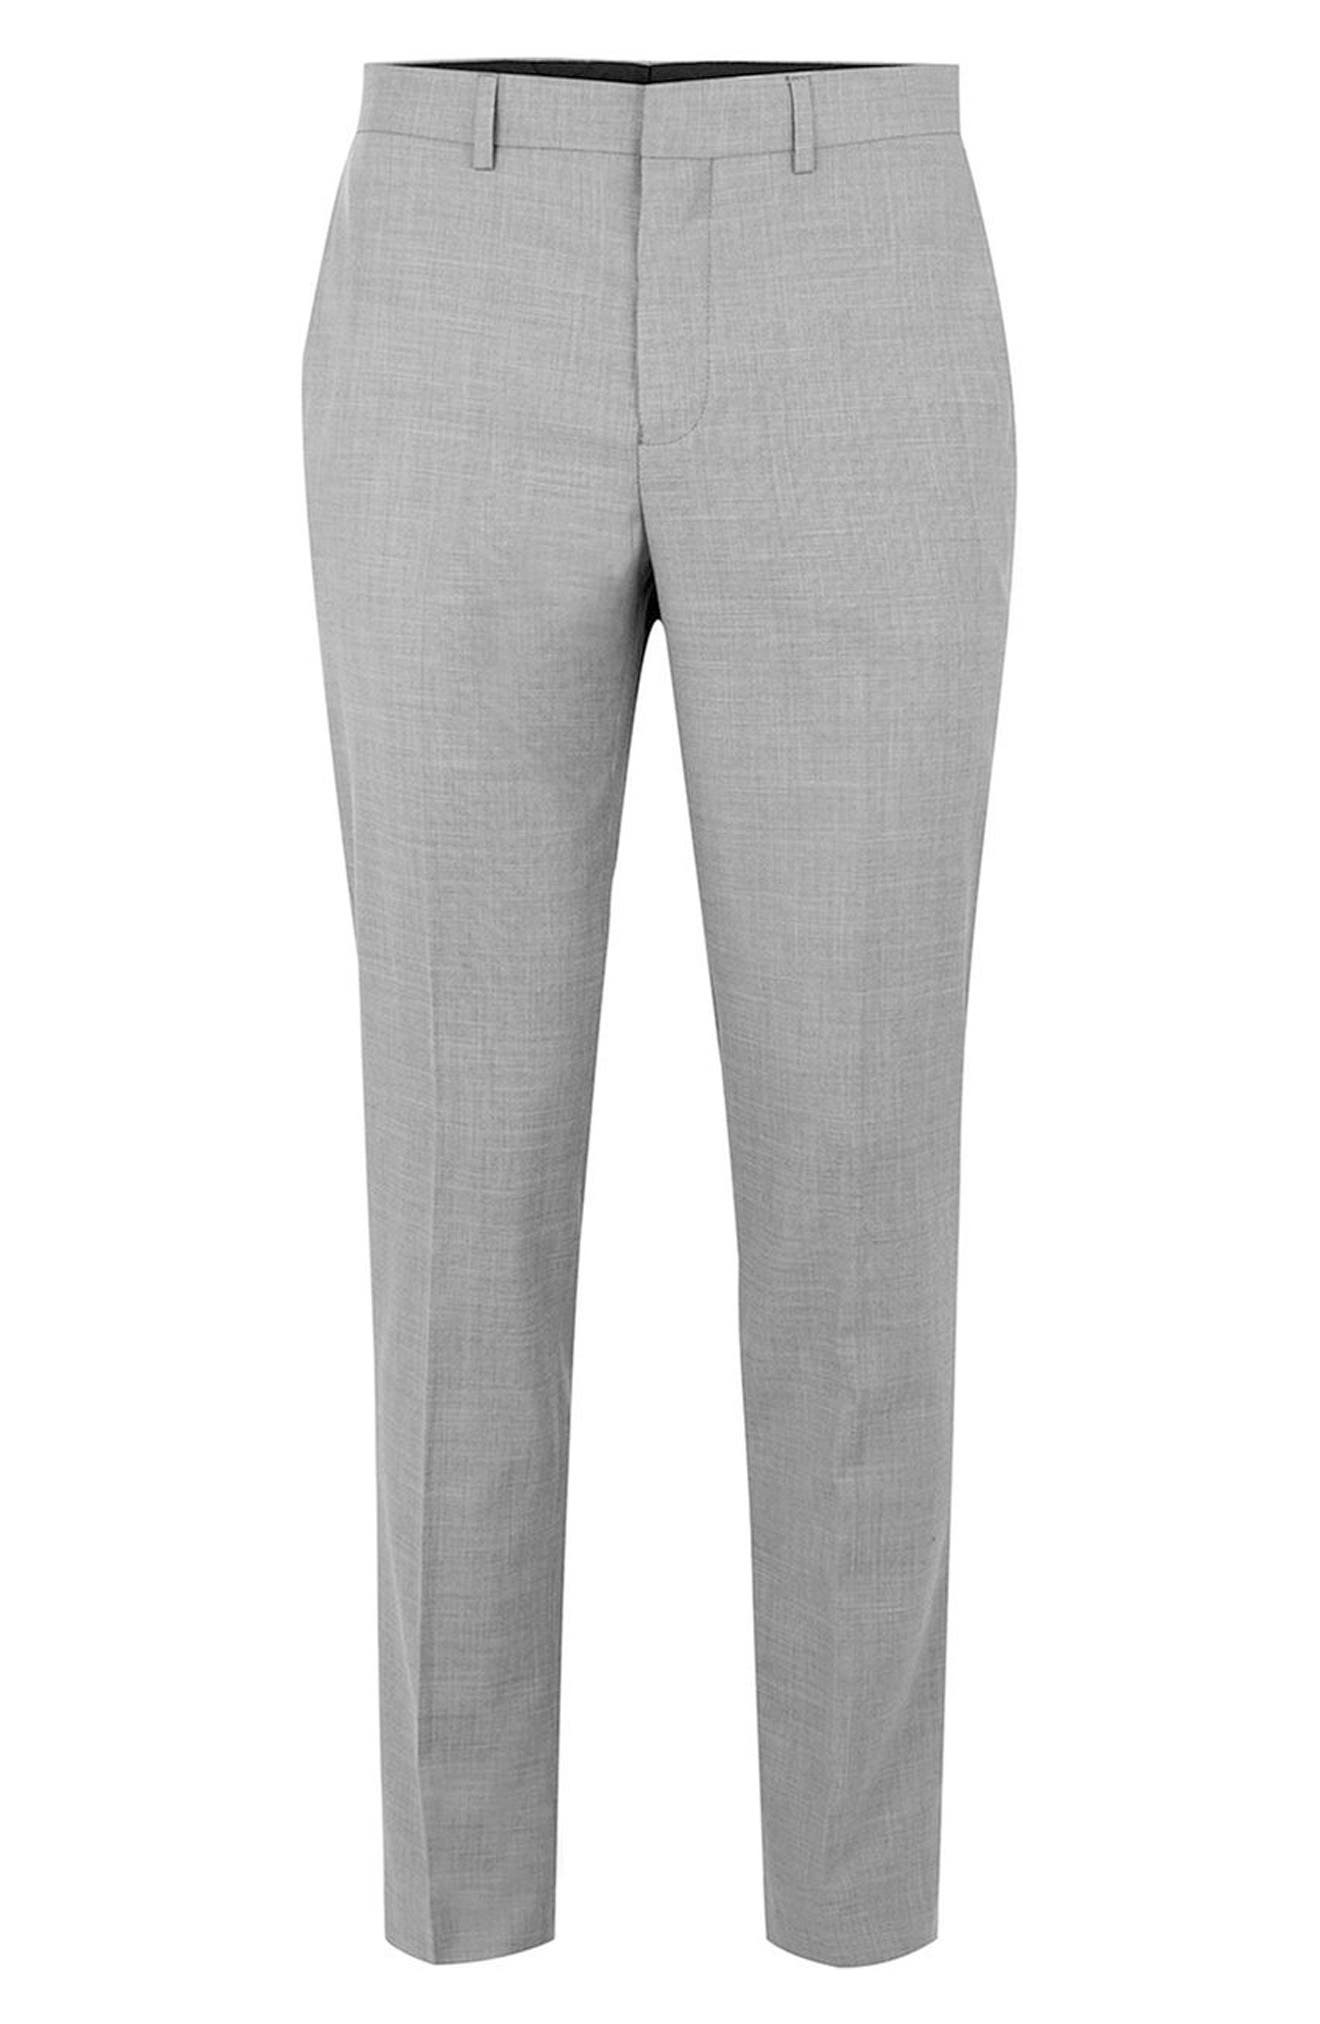 Como Skinny Fit Grey Suit Pants,                             Alternate thumbnail 4, color,                             GREY